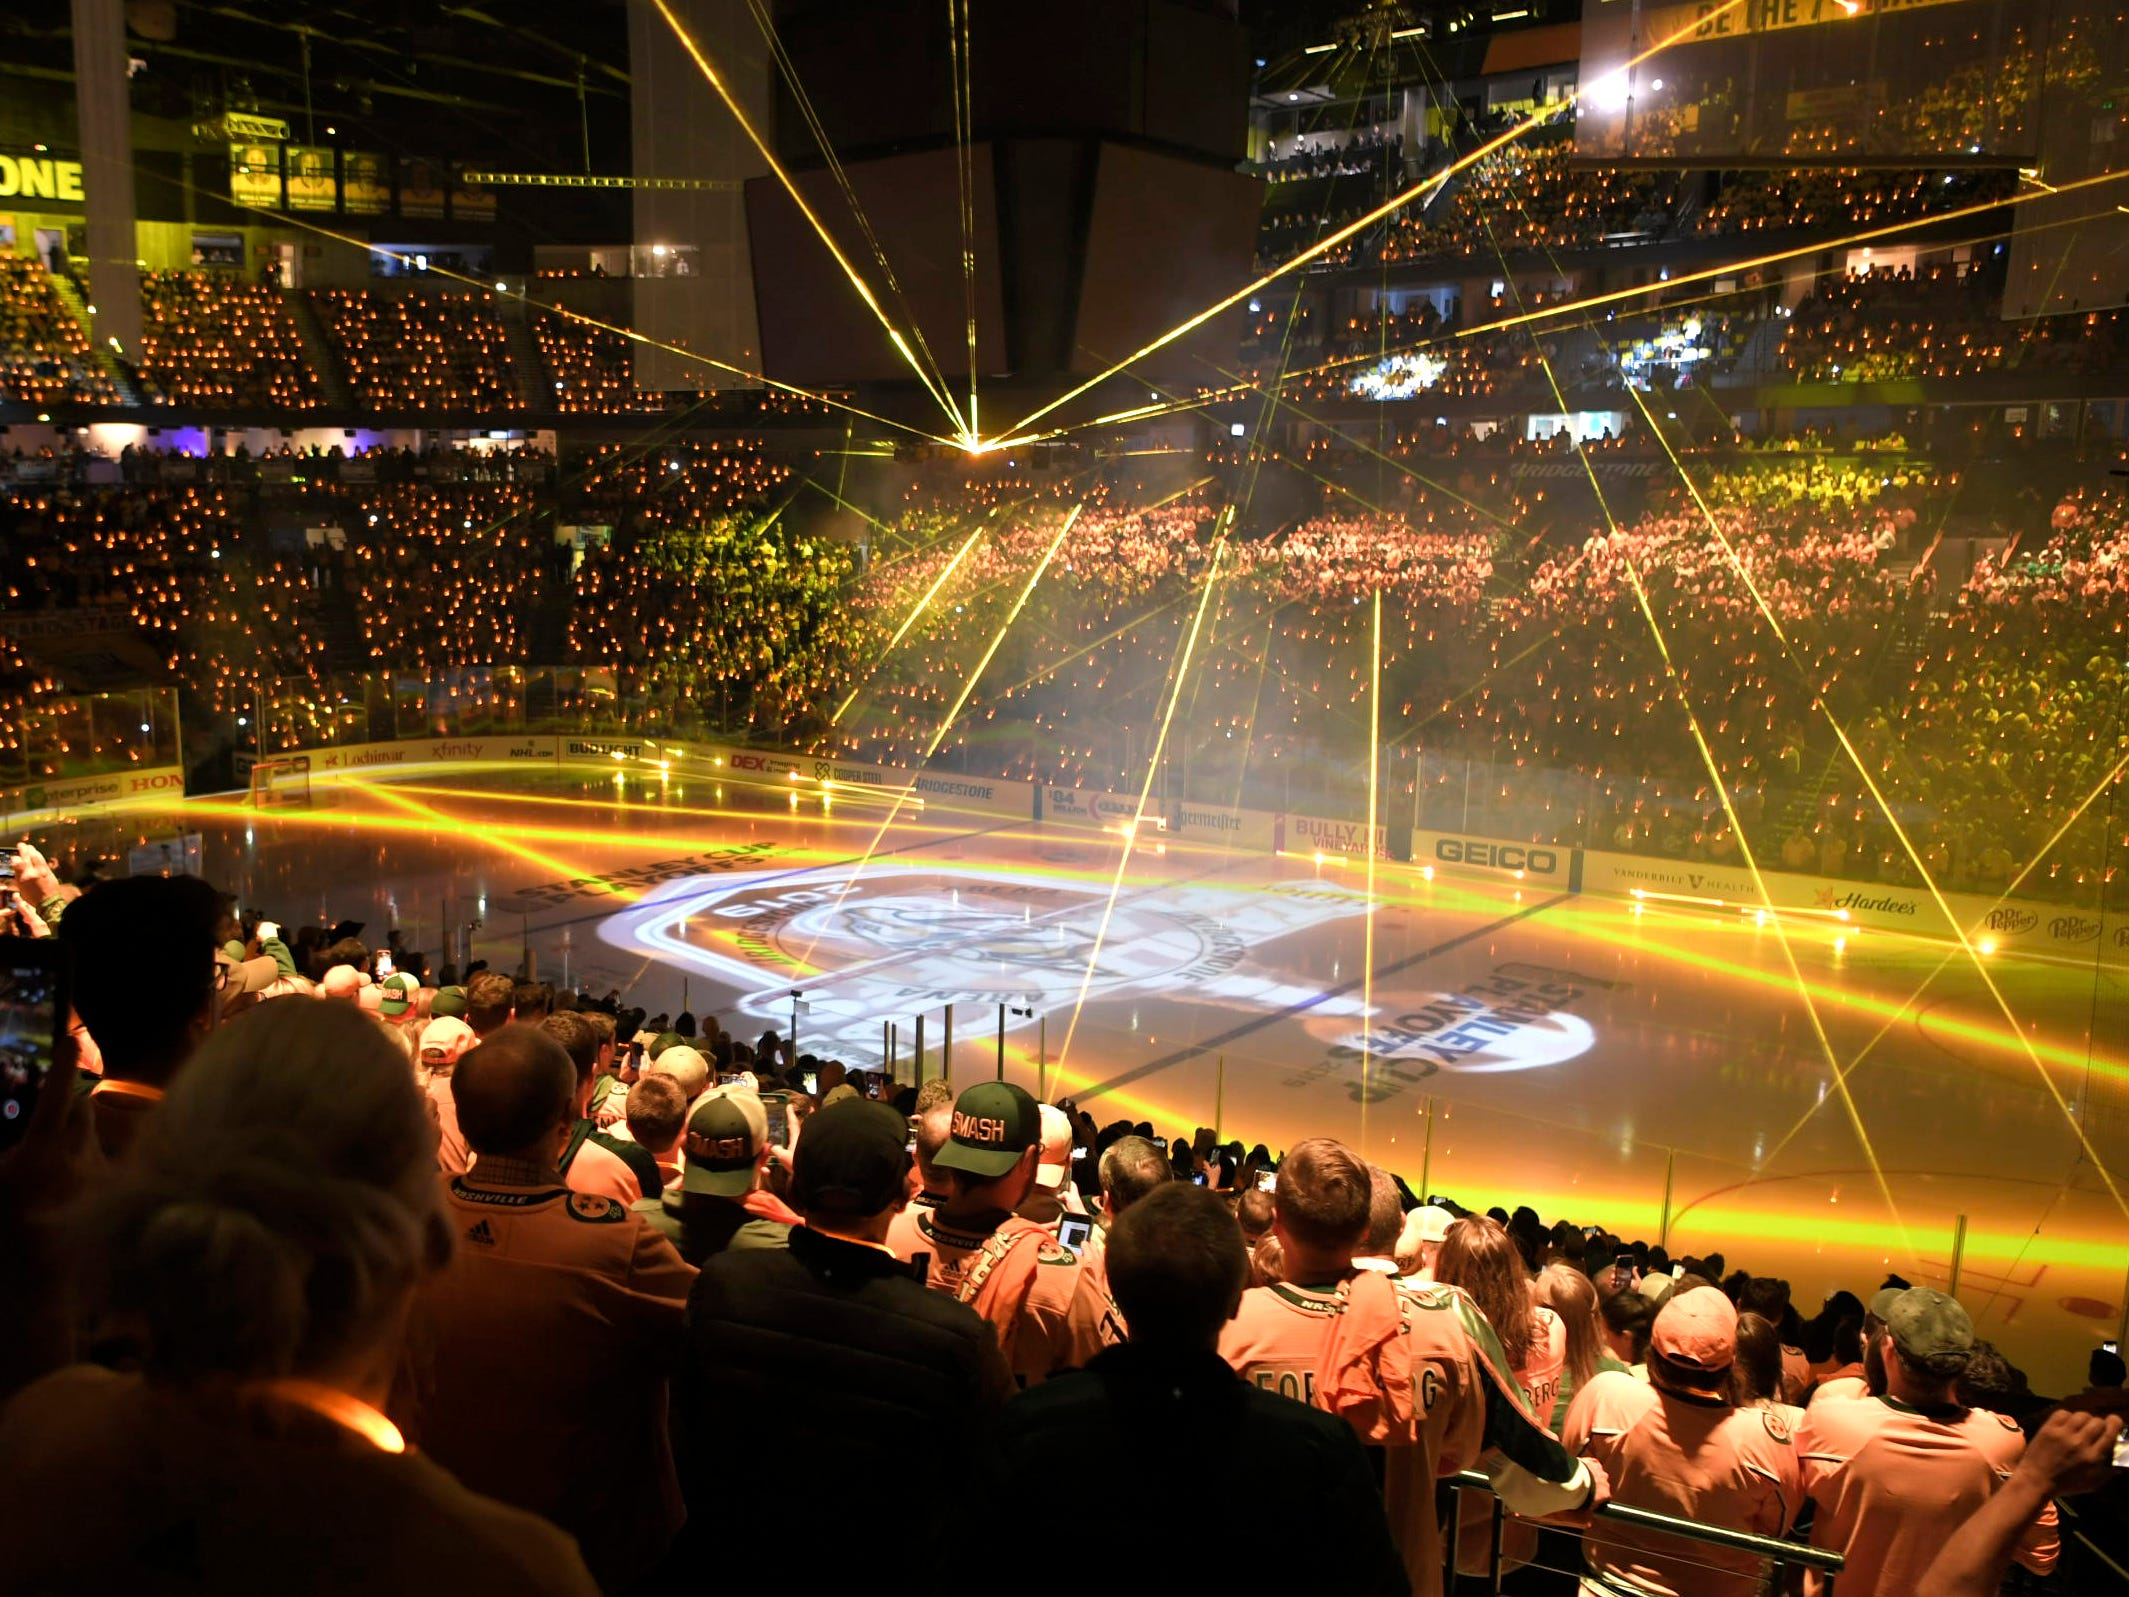 Fans wearing light lanyards light up the Bridgestone Arena before the Predators' divisional semifinal Stanley Cup playoff game at Bridgestone Arena in Nashville on Wednesday, April 10, 2019.